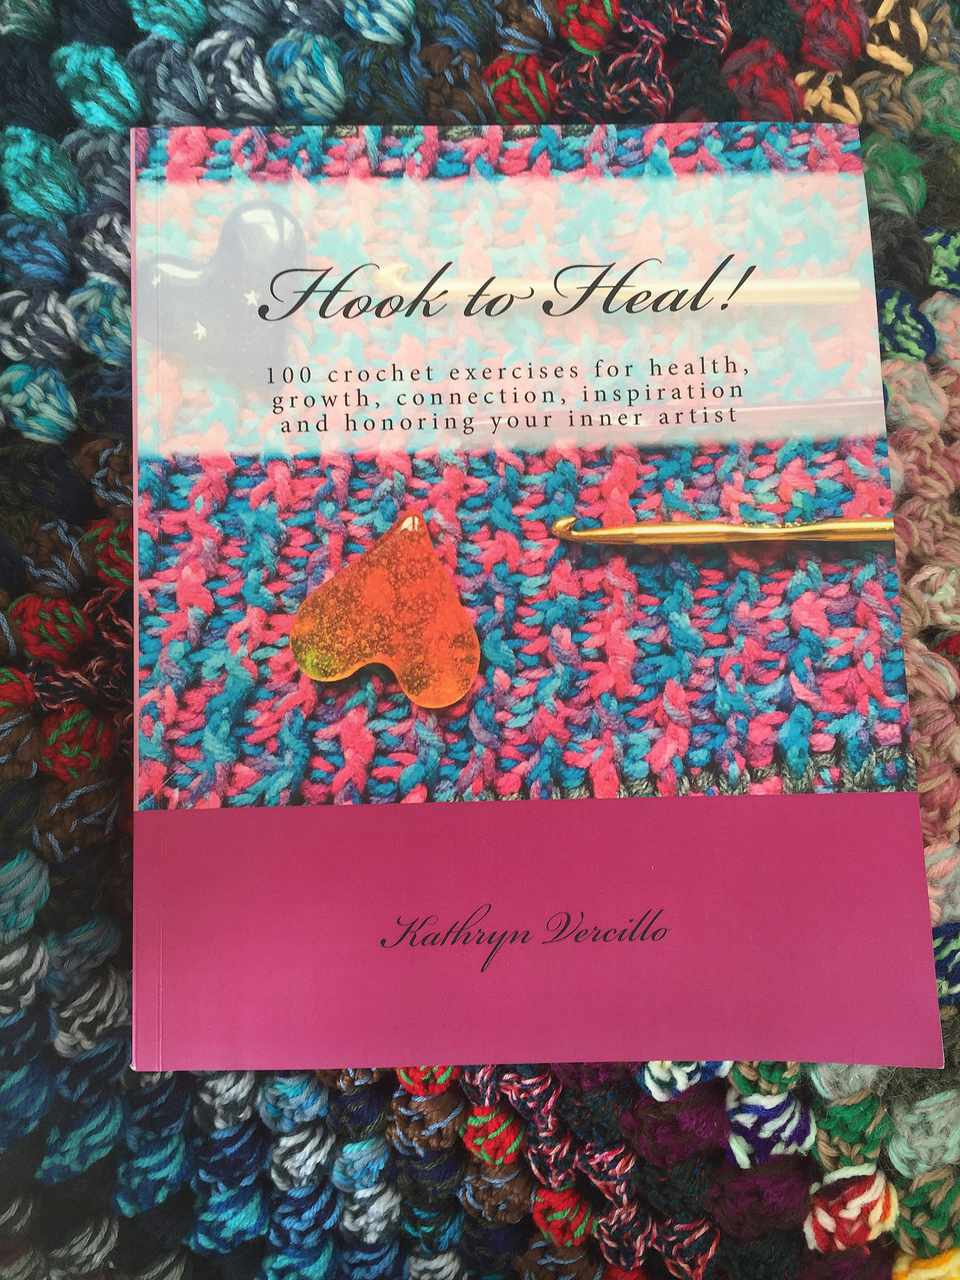 Hook to Heal Crochet Book